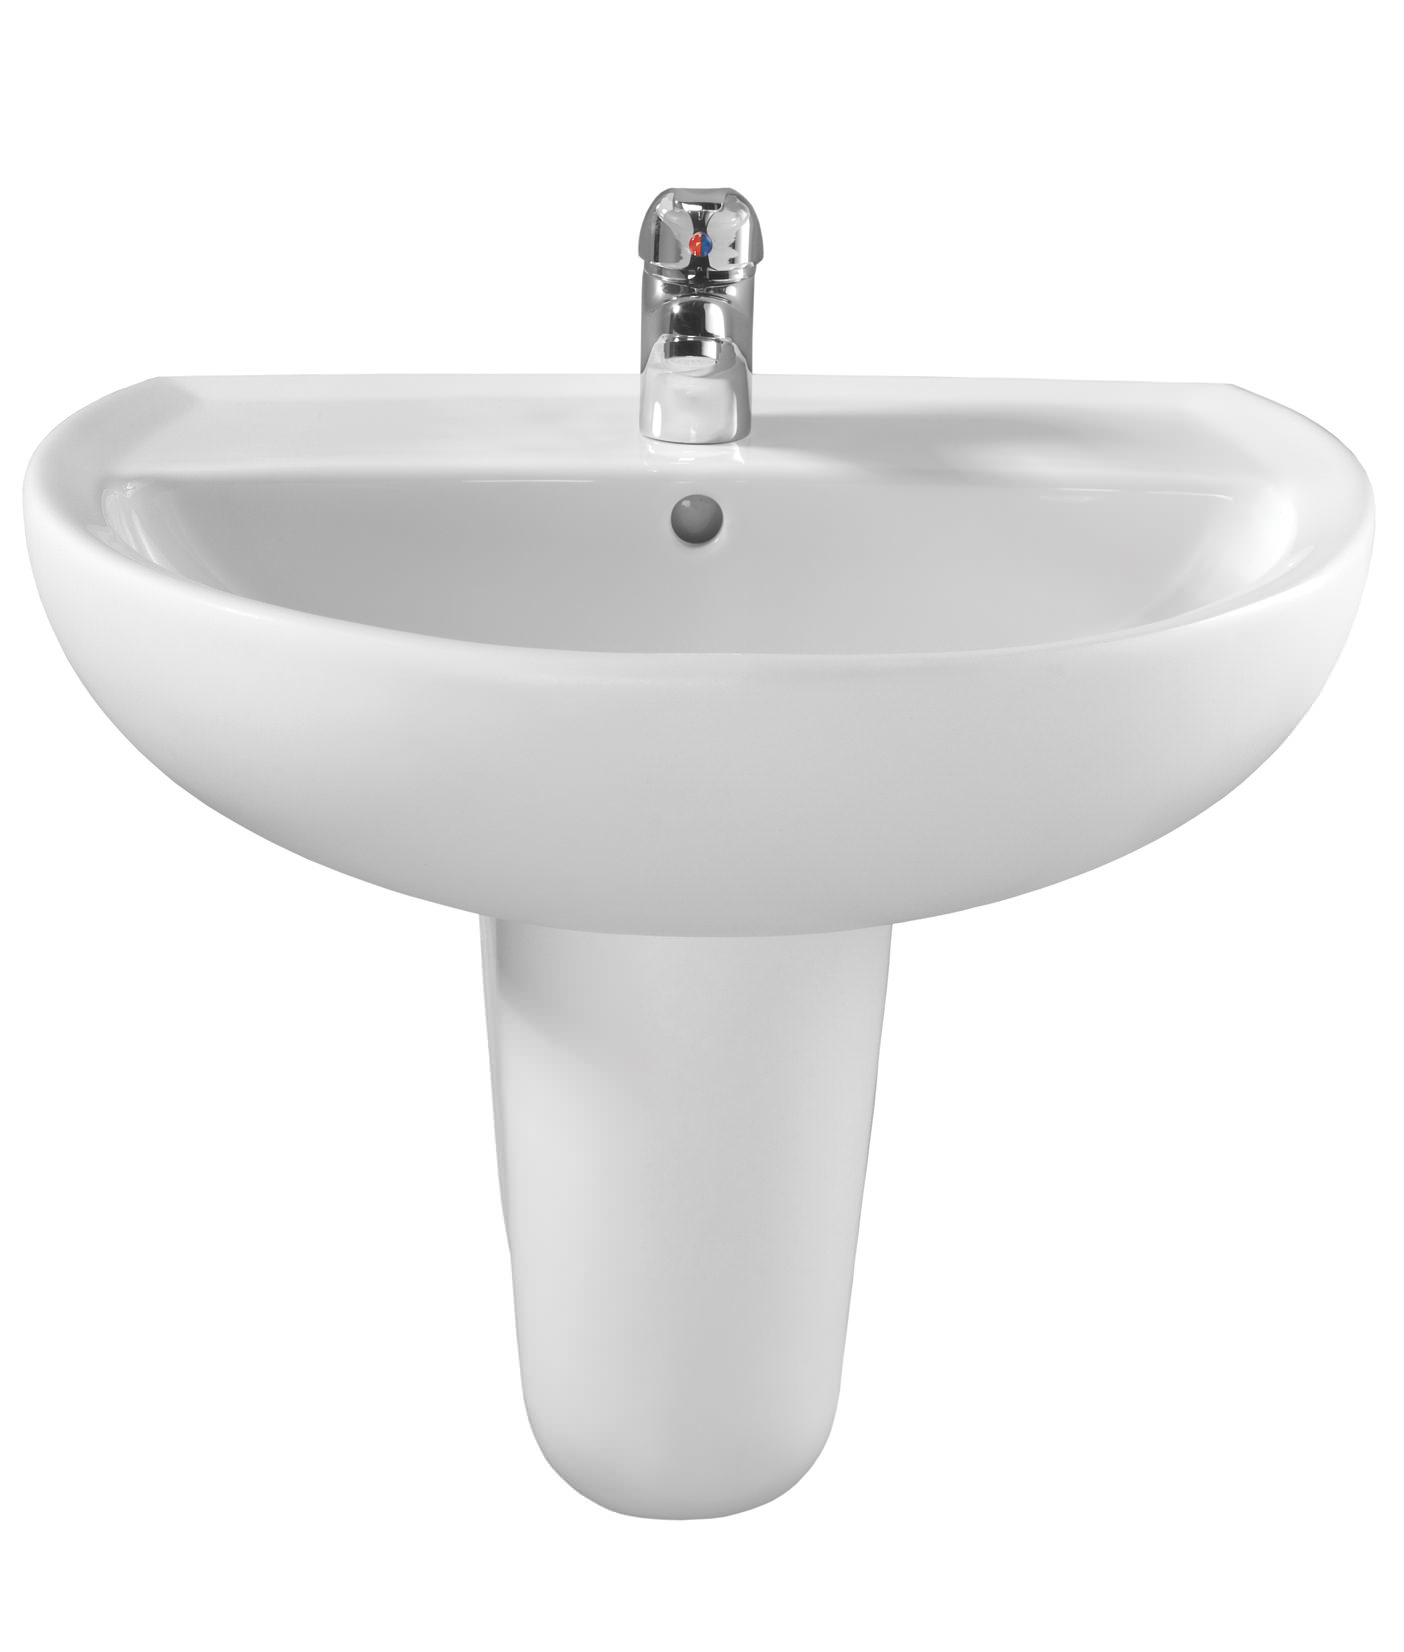 Twyford Alcona 550 X 420mm 1 Tap Hole Washbasin Ar4211wh